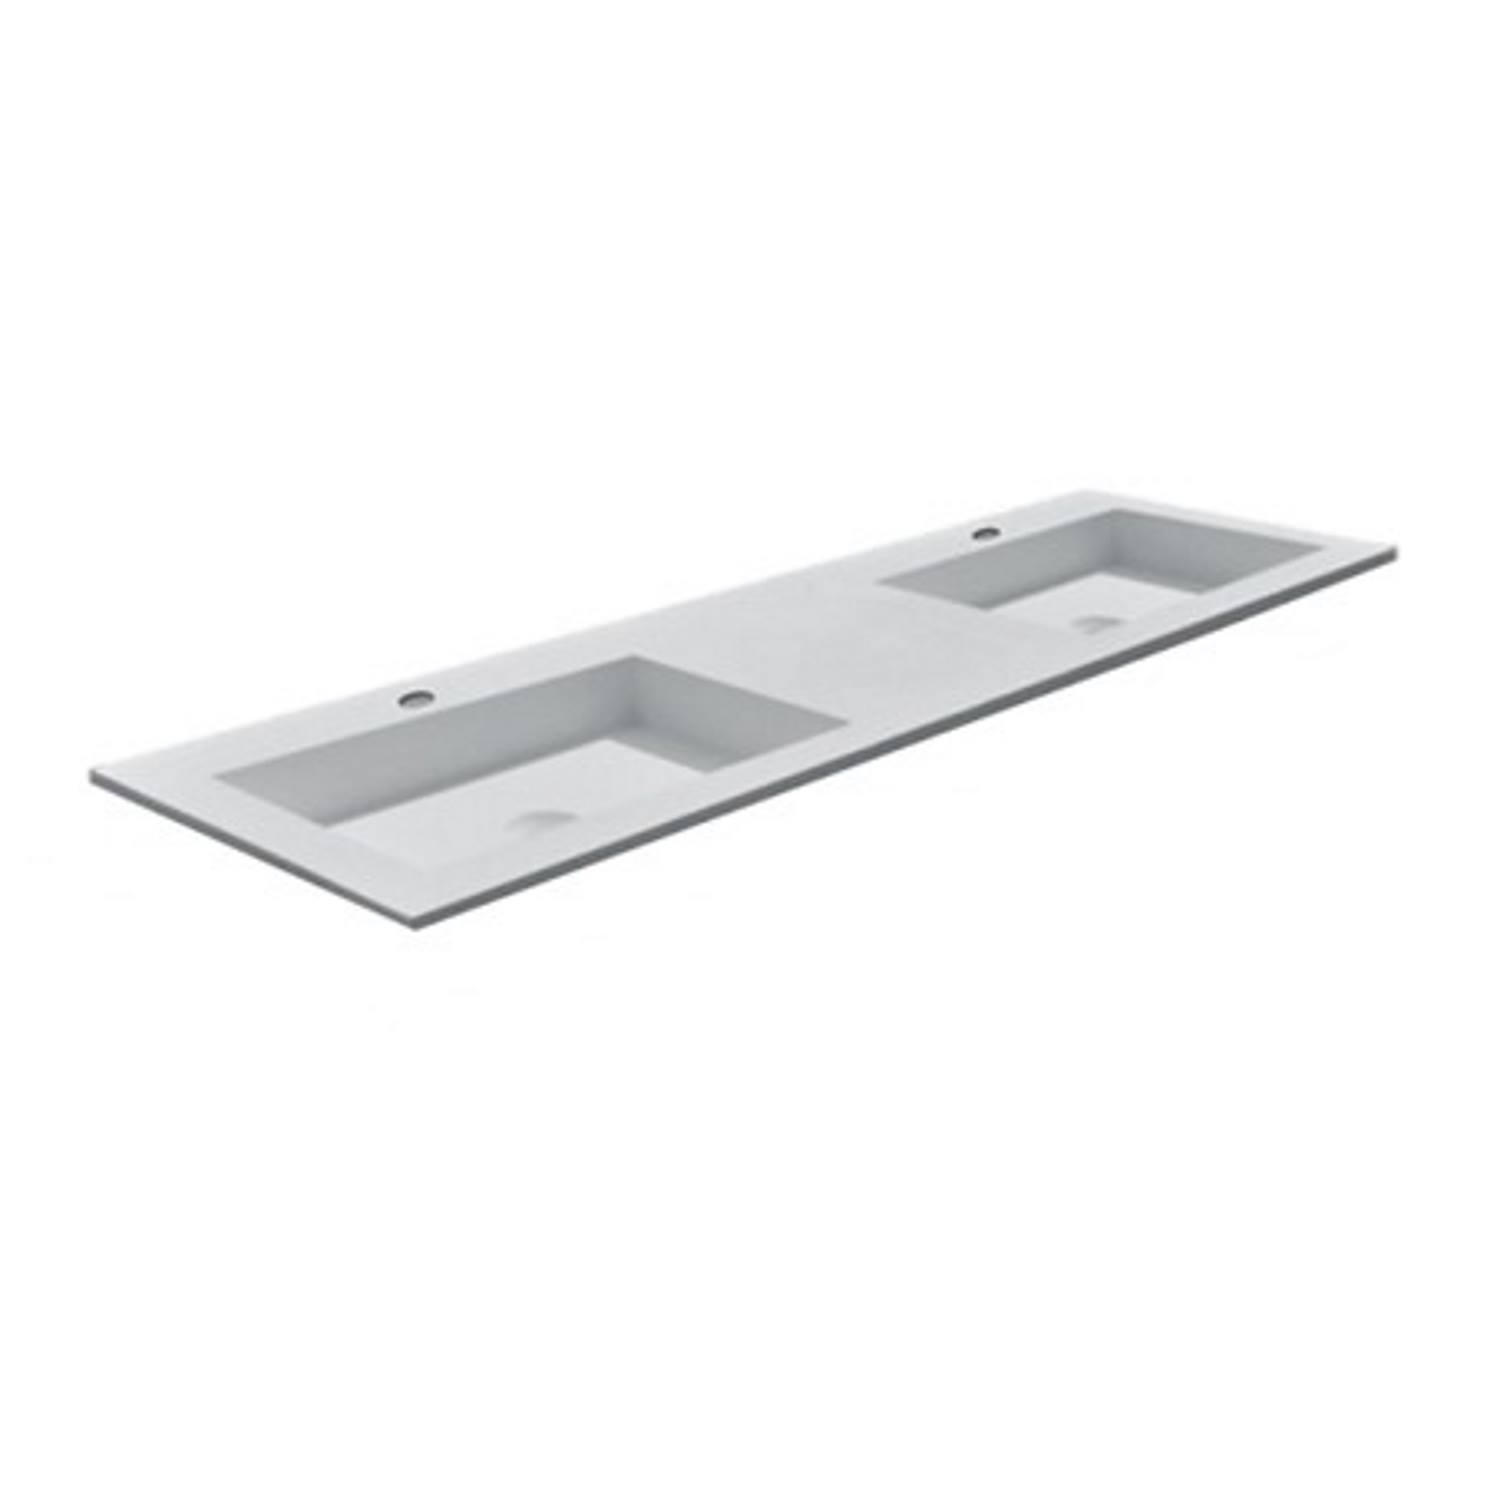 Wastafel Boss & Wessing 2 Kraangaten 45.5x120 cm Solid Surface Wit